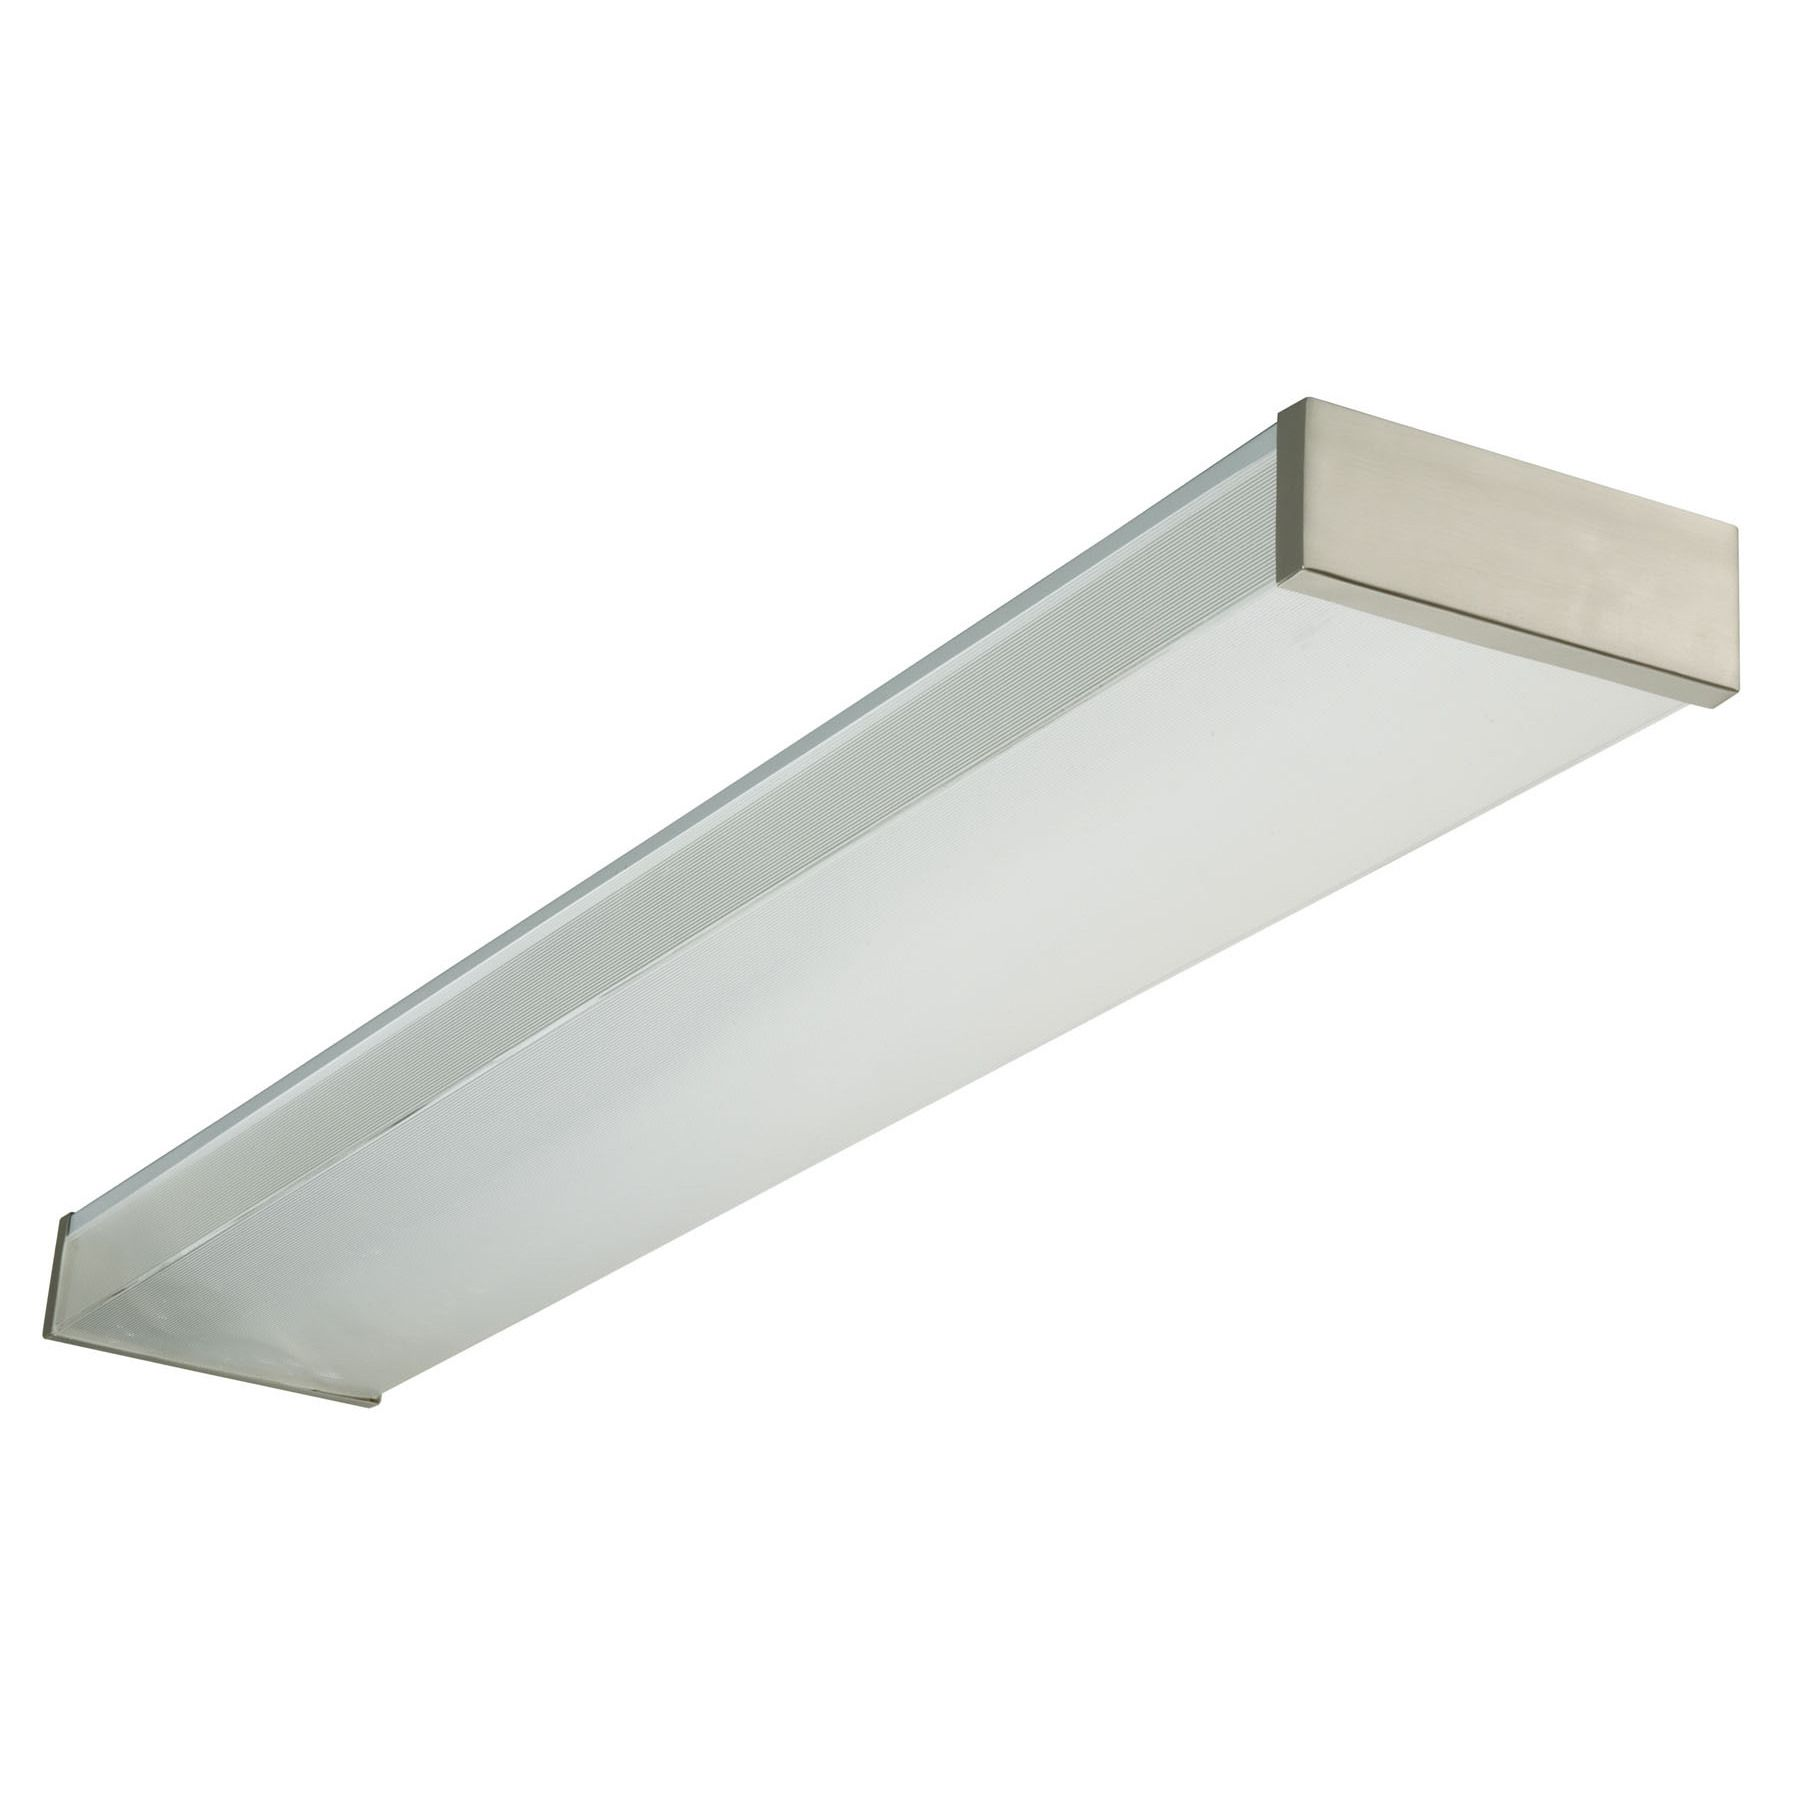 Lithonia Lighting NEW232120REBN 4' 32 Watt Brushed Nickel